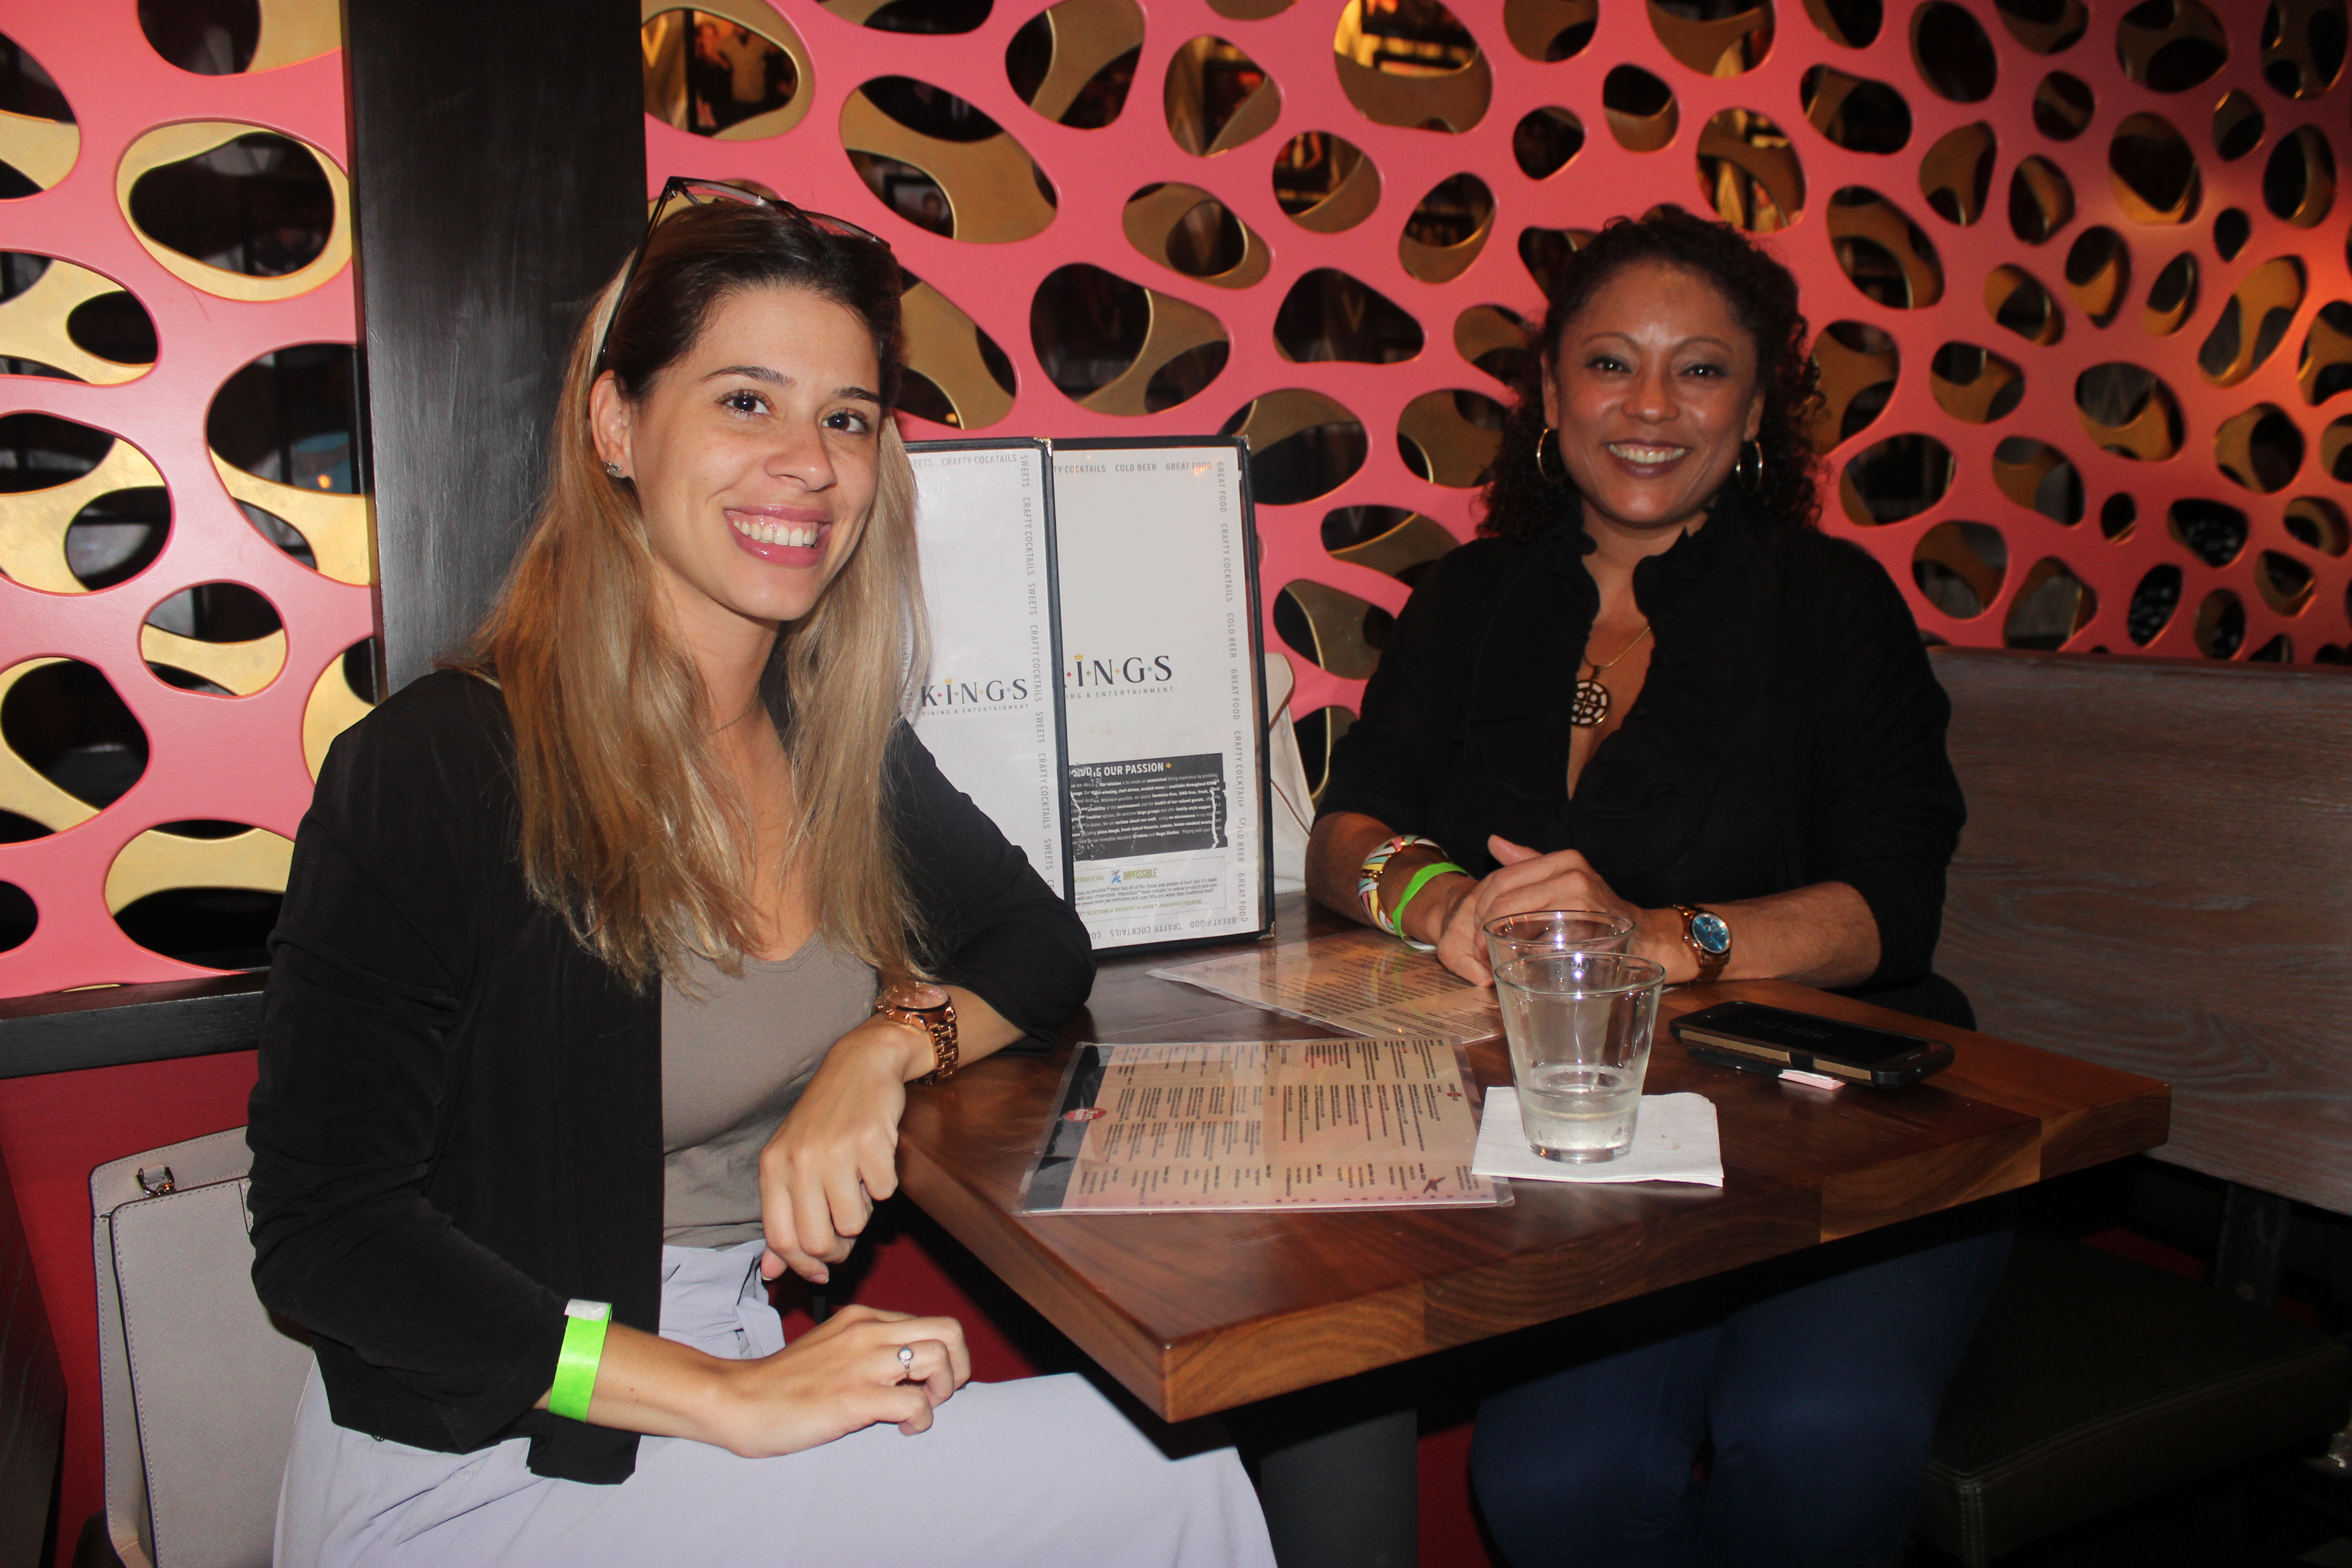 Ladies networking at King's Bowl Business networking event hosted by the Doral Chamber of Commerce.